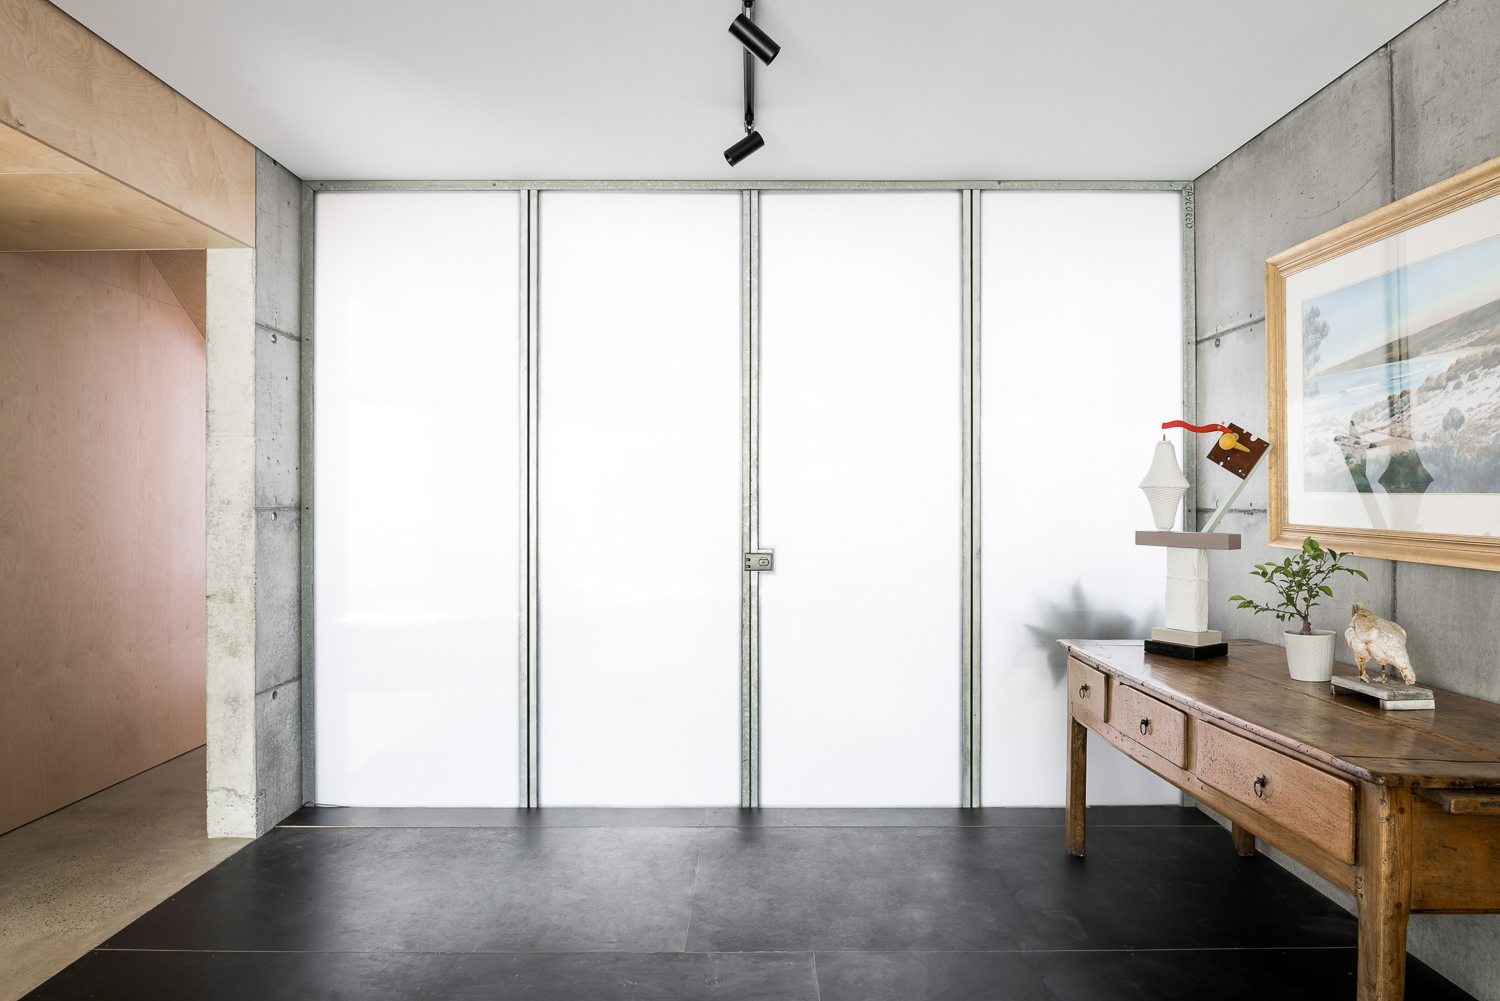 Gallery Of Silver Street House By Ehdo Architecture Local Design And Interiors South Fremantle, Wa Image 12